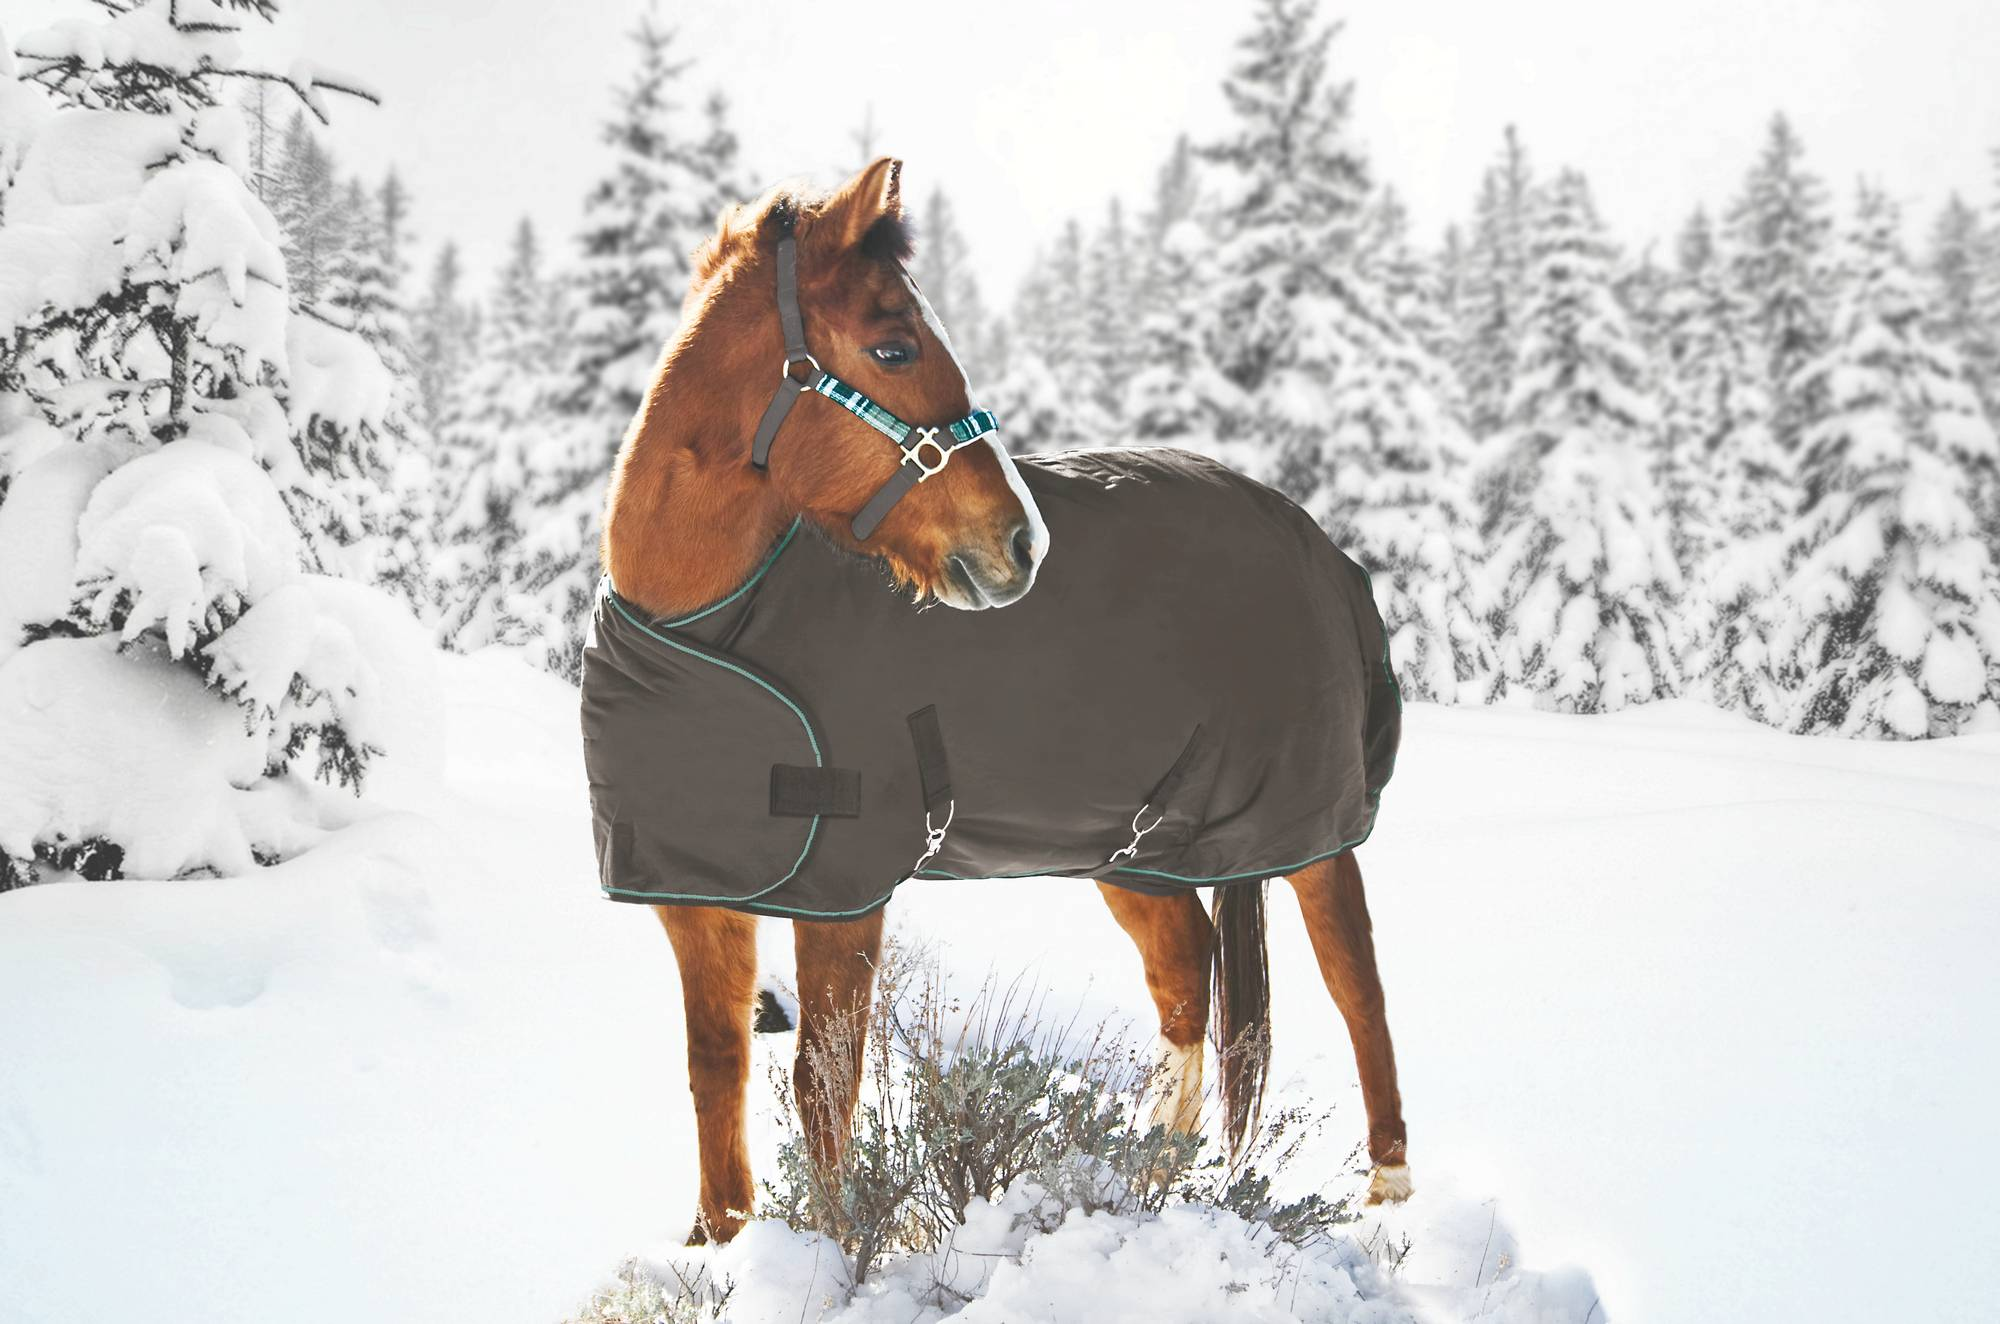 Kensington All Around Yearling Turnout Blanket 1200D 180g